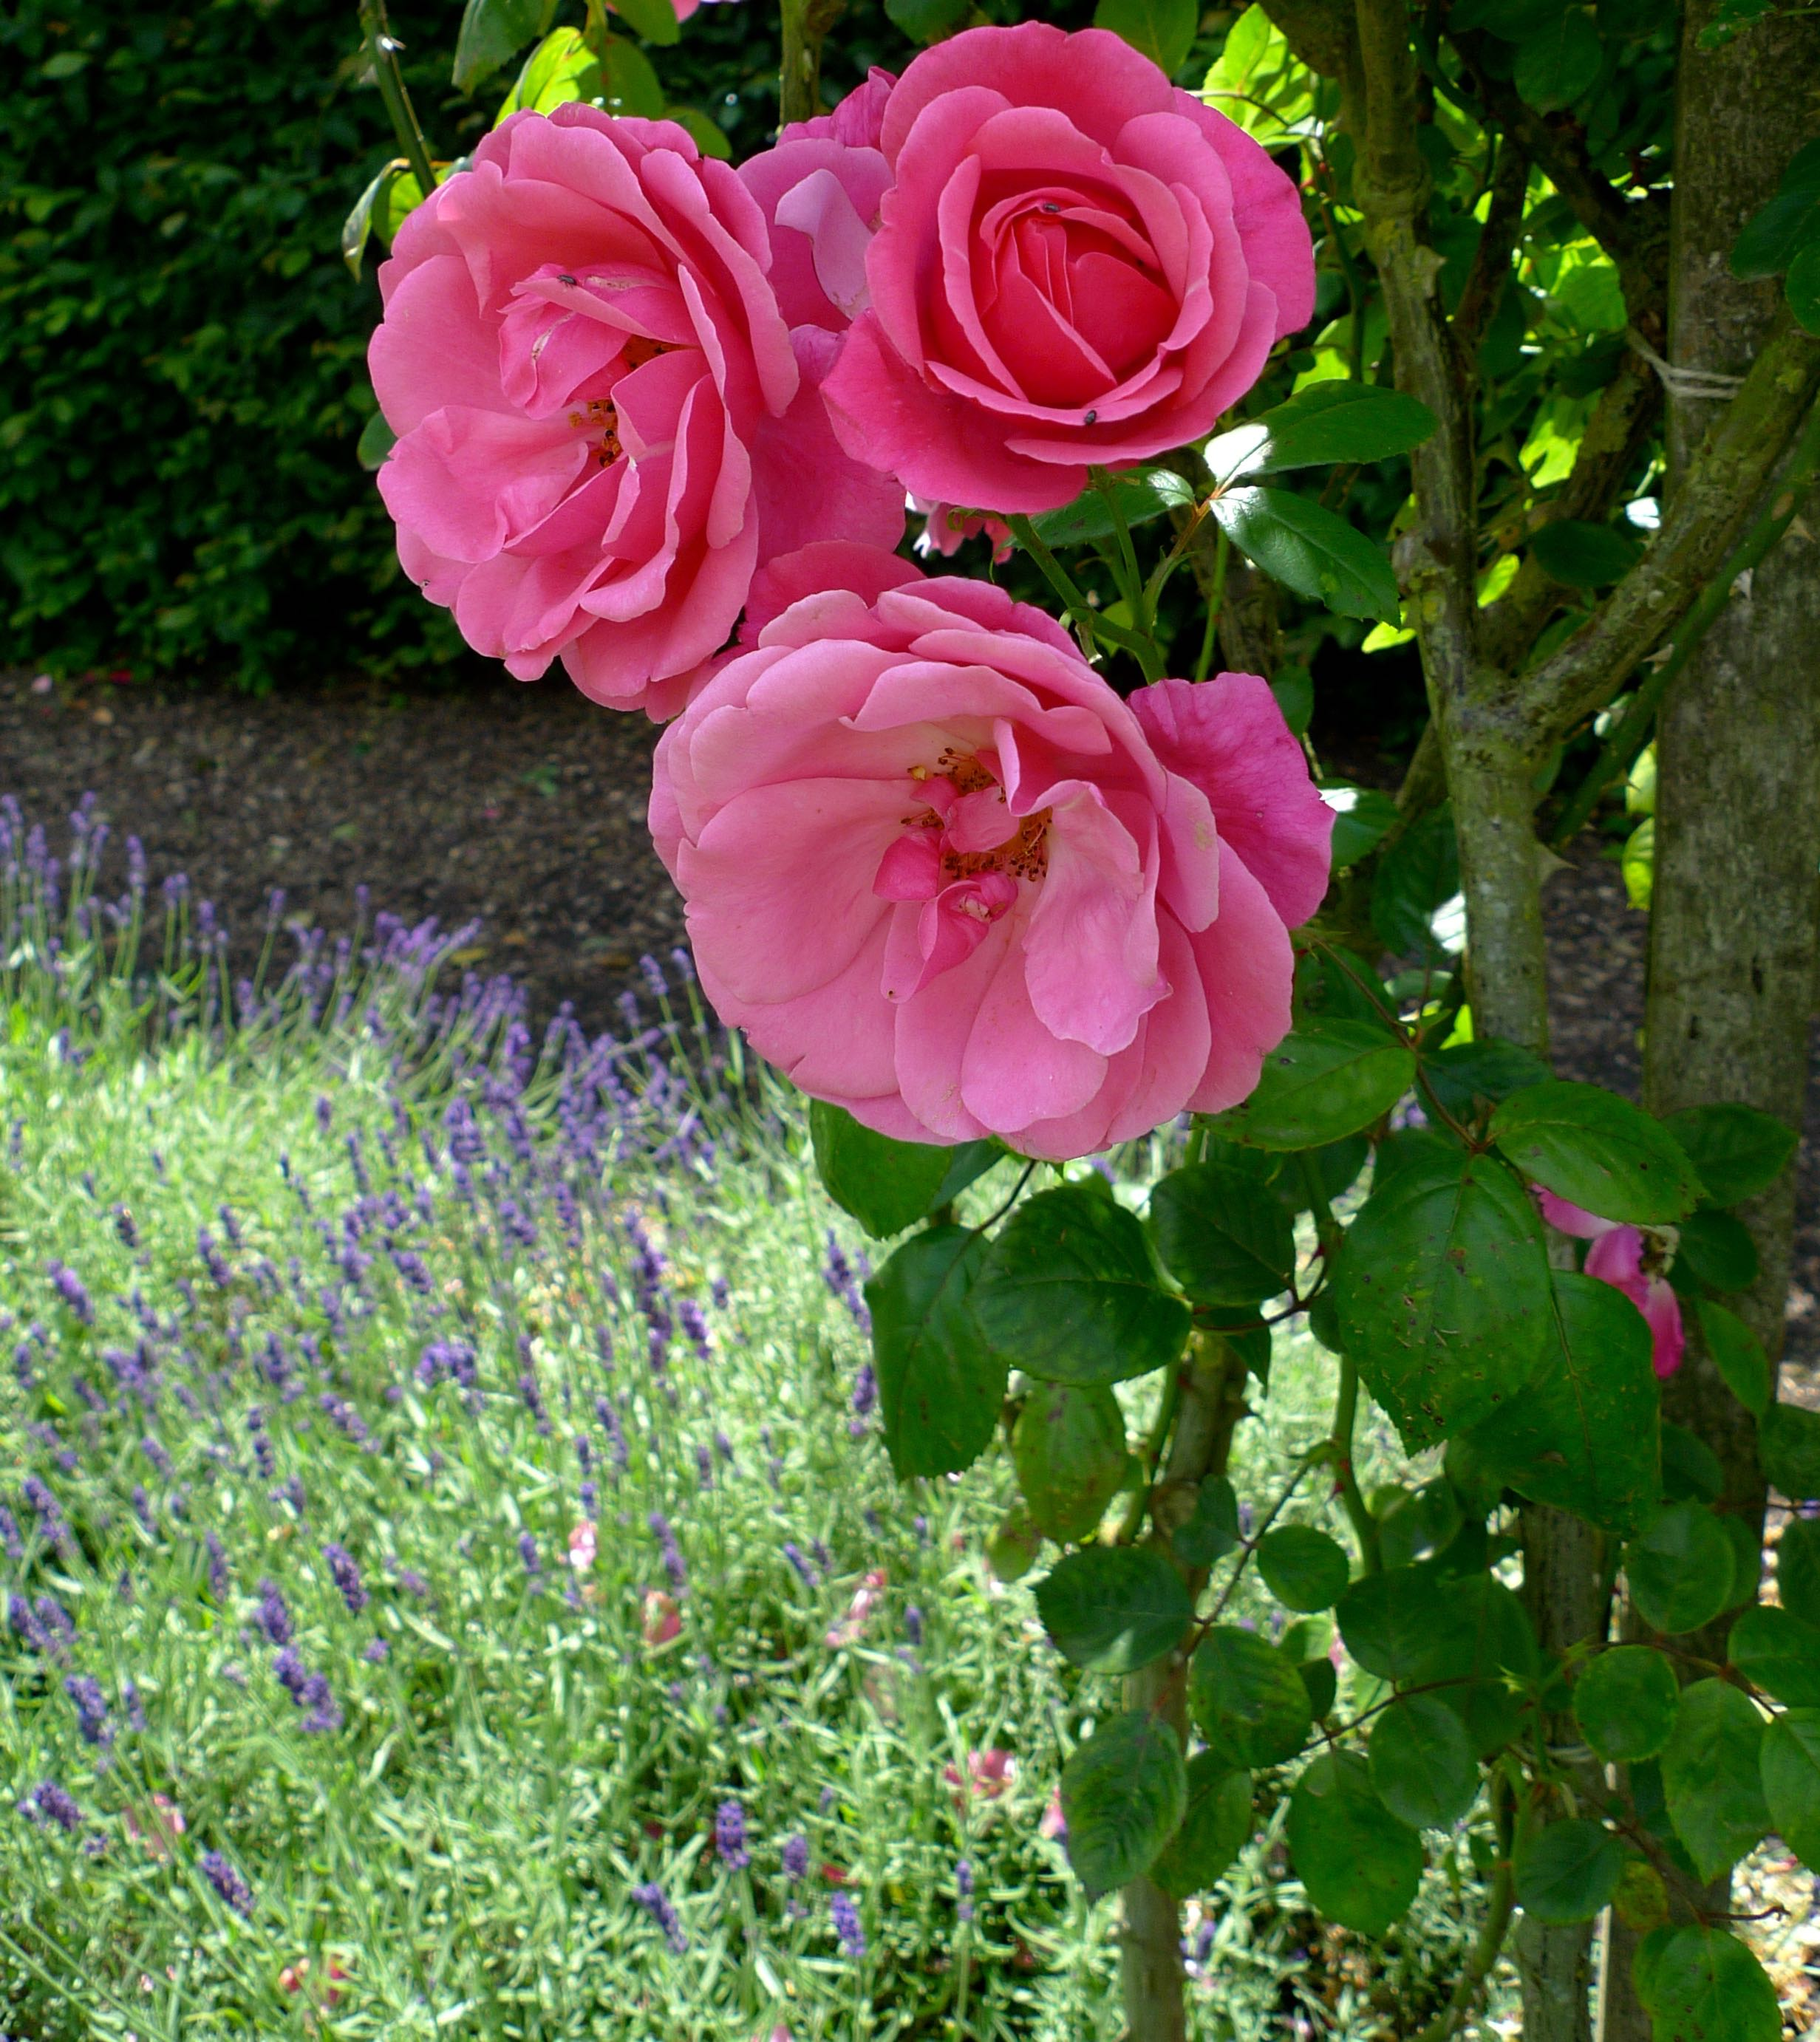 pink roses against a bed of lavender